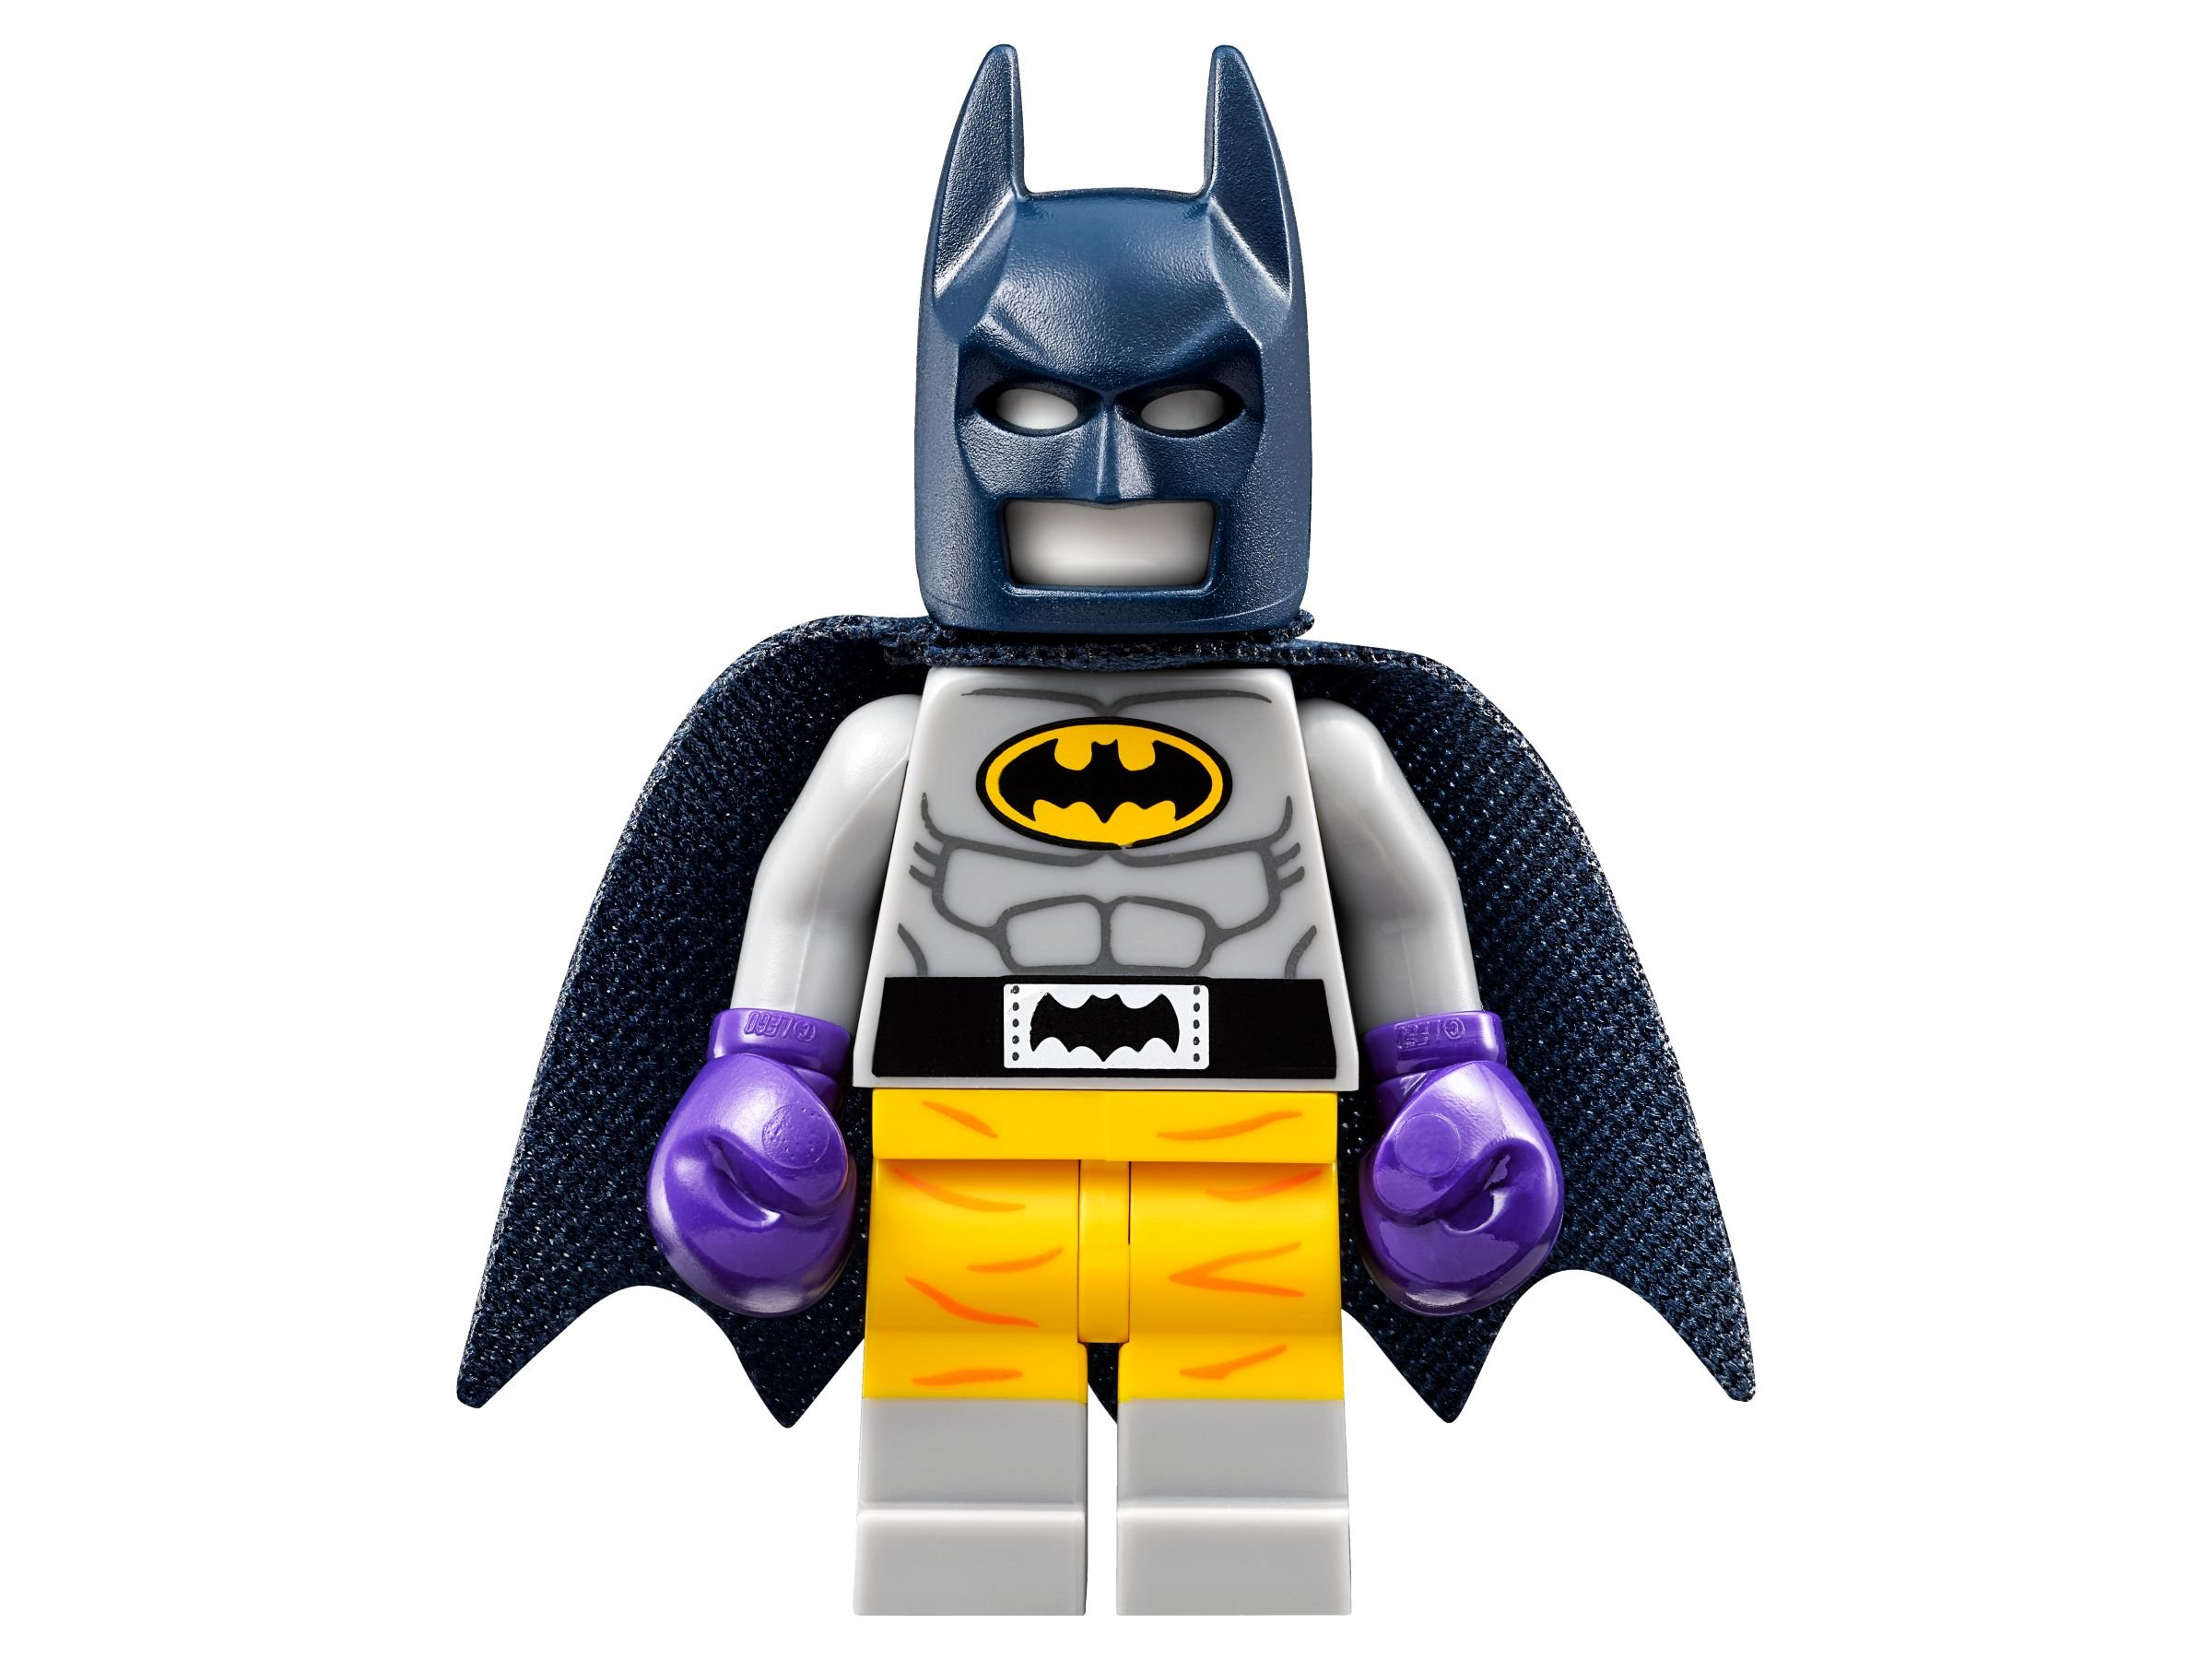 LEGO The LEGO Batman Movie 70909 Batcave-Einbruch LEGO_70909_alt12.jpg